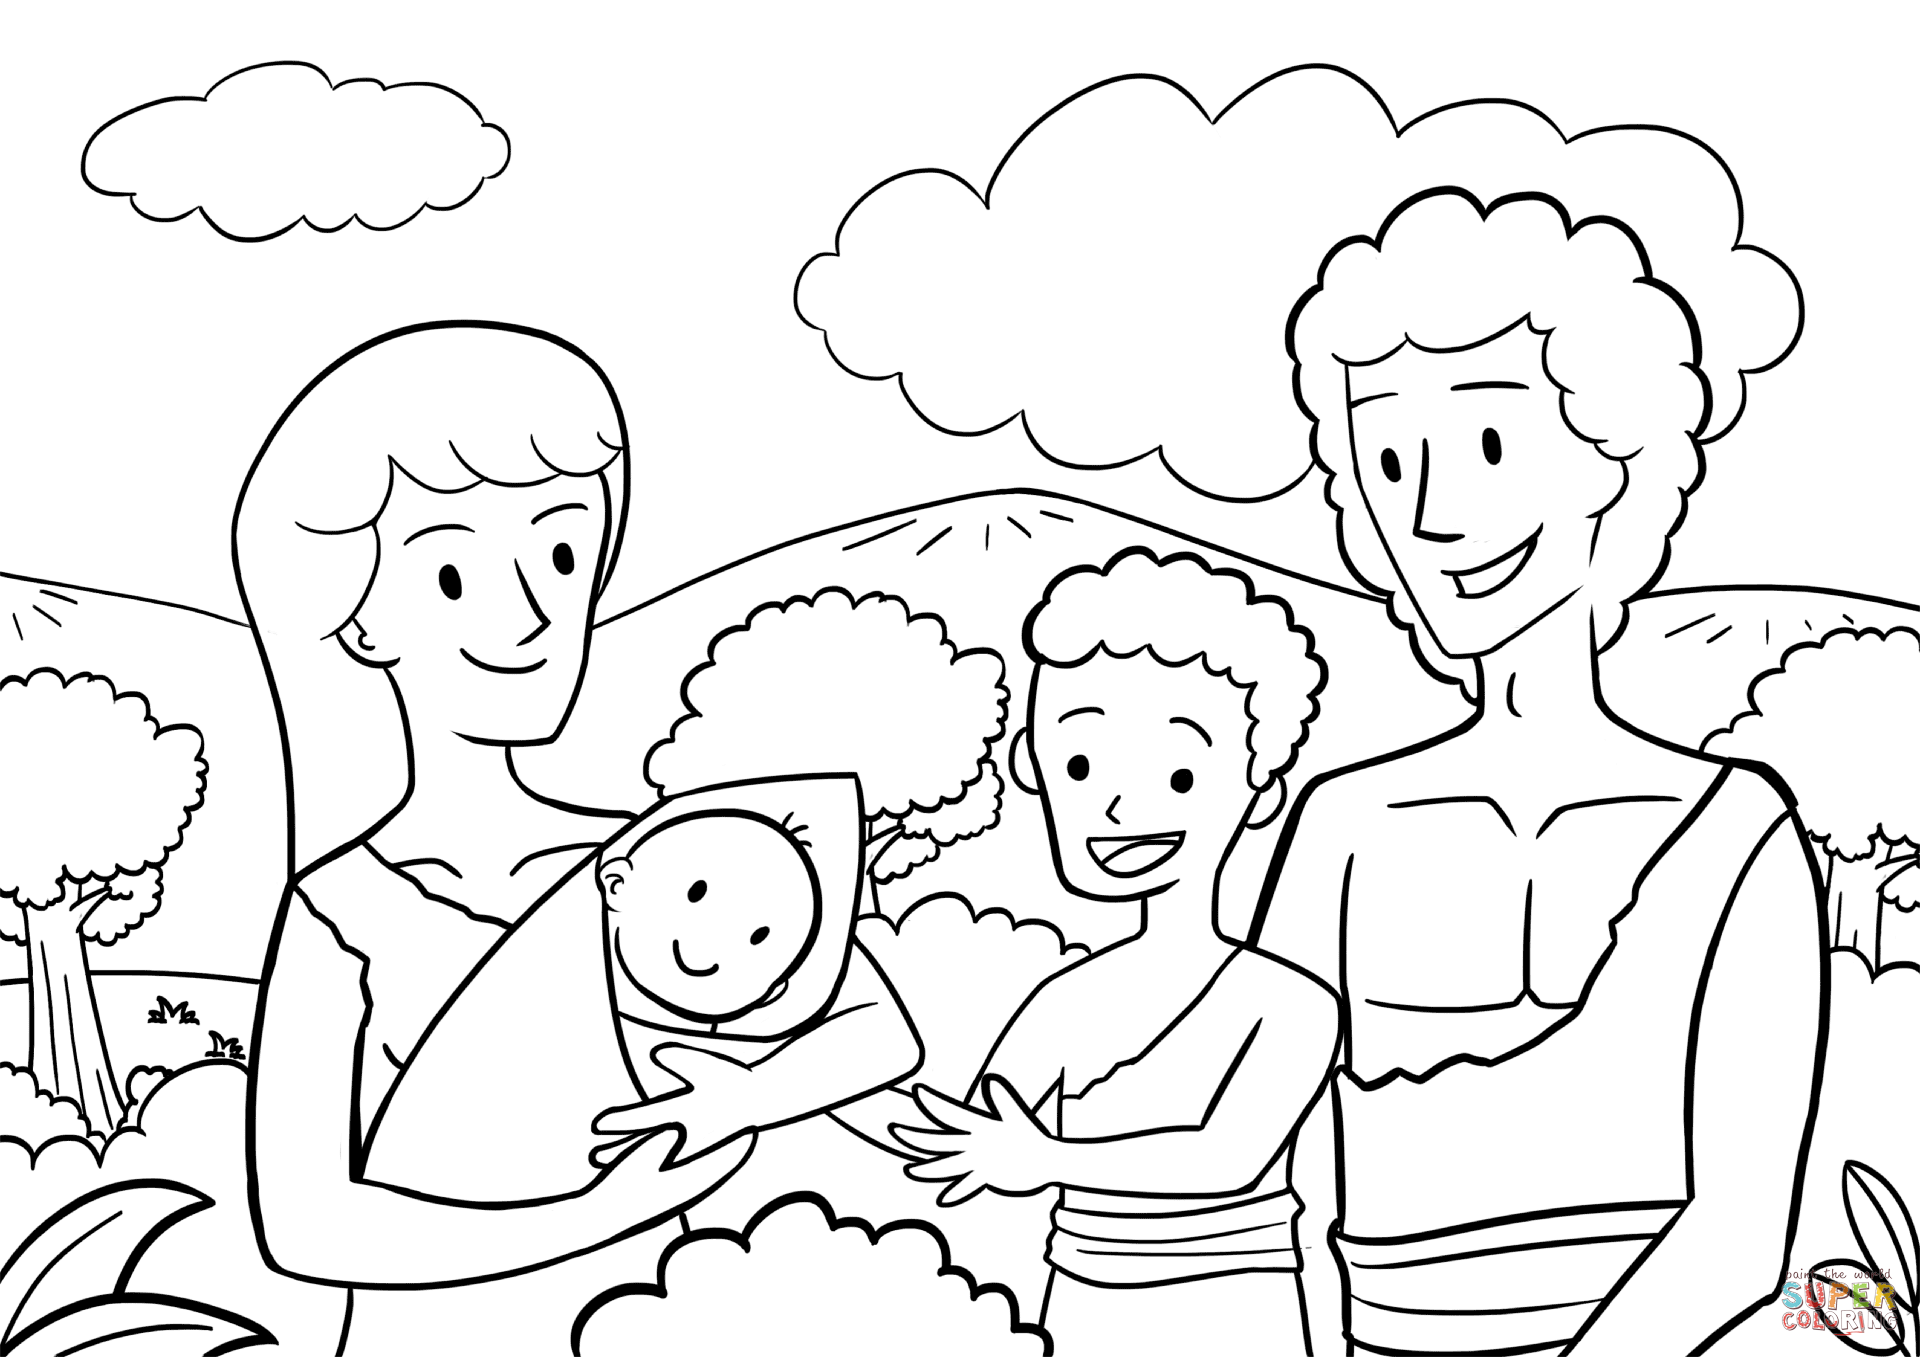 adam and eve coloring page free printable adam and eve coloring pages for kids and eve coloring page adam